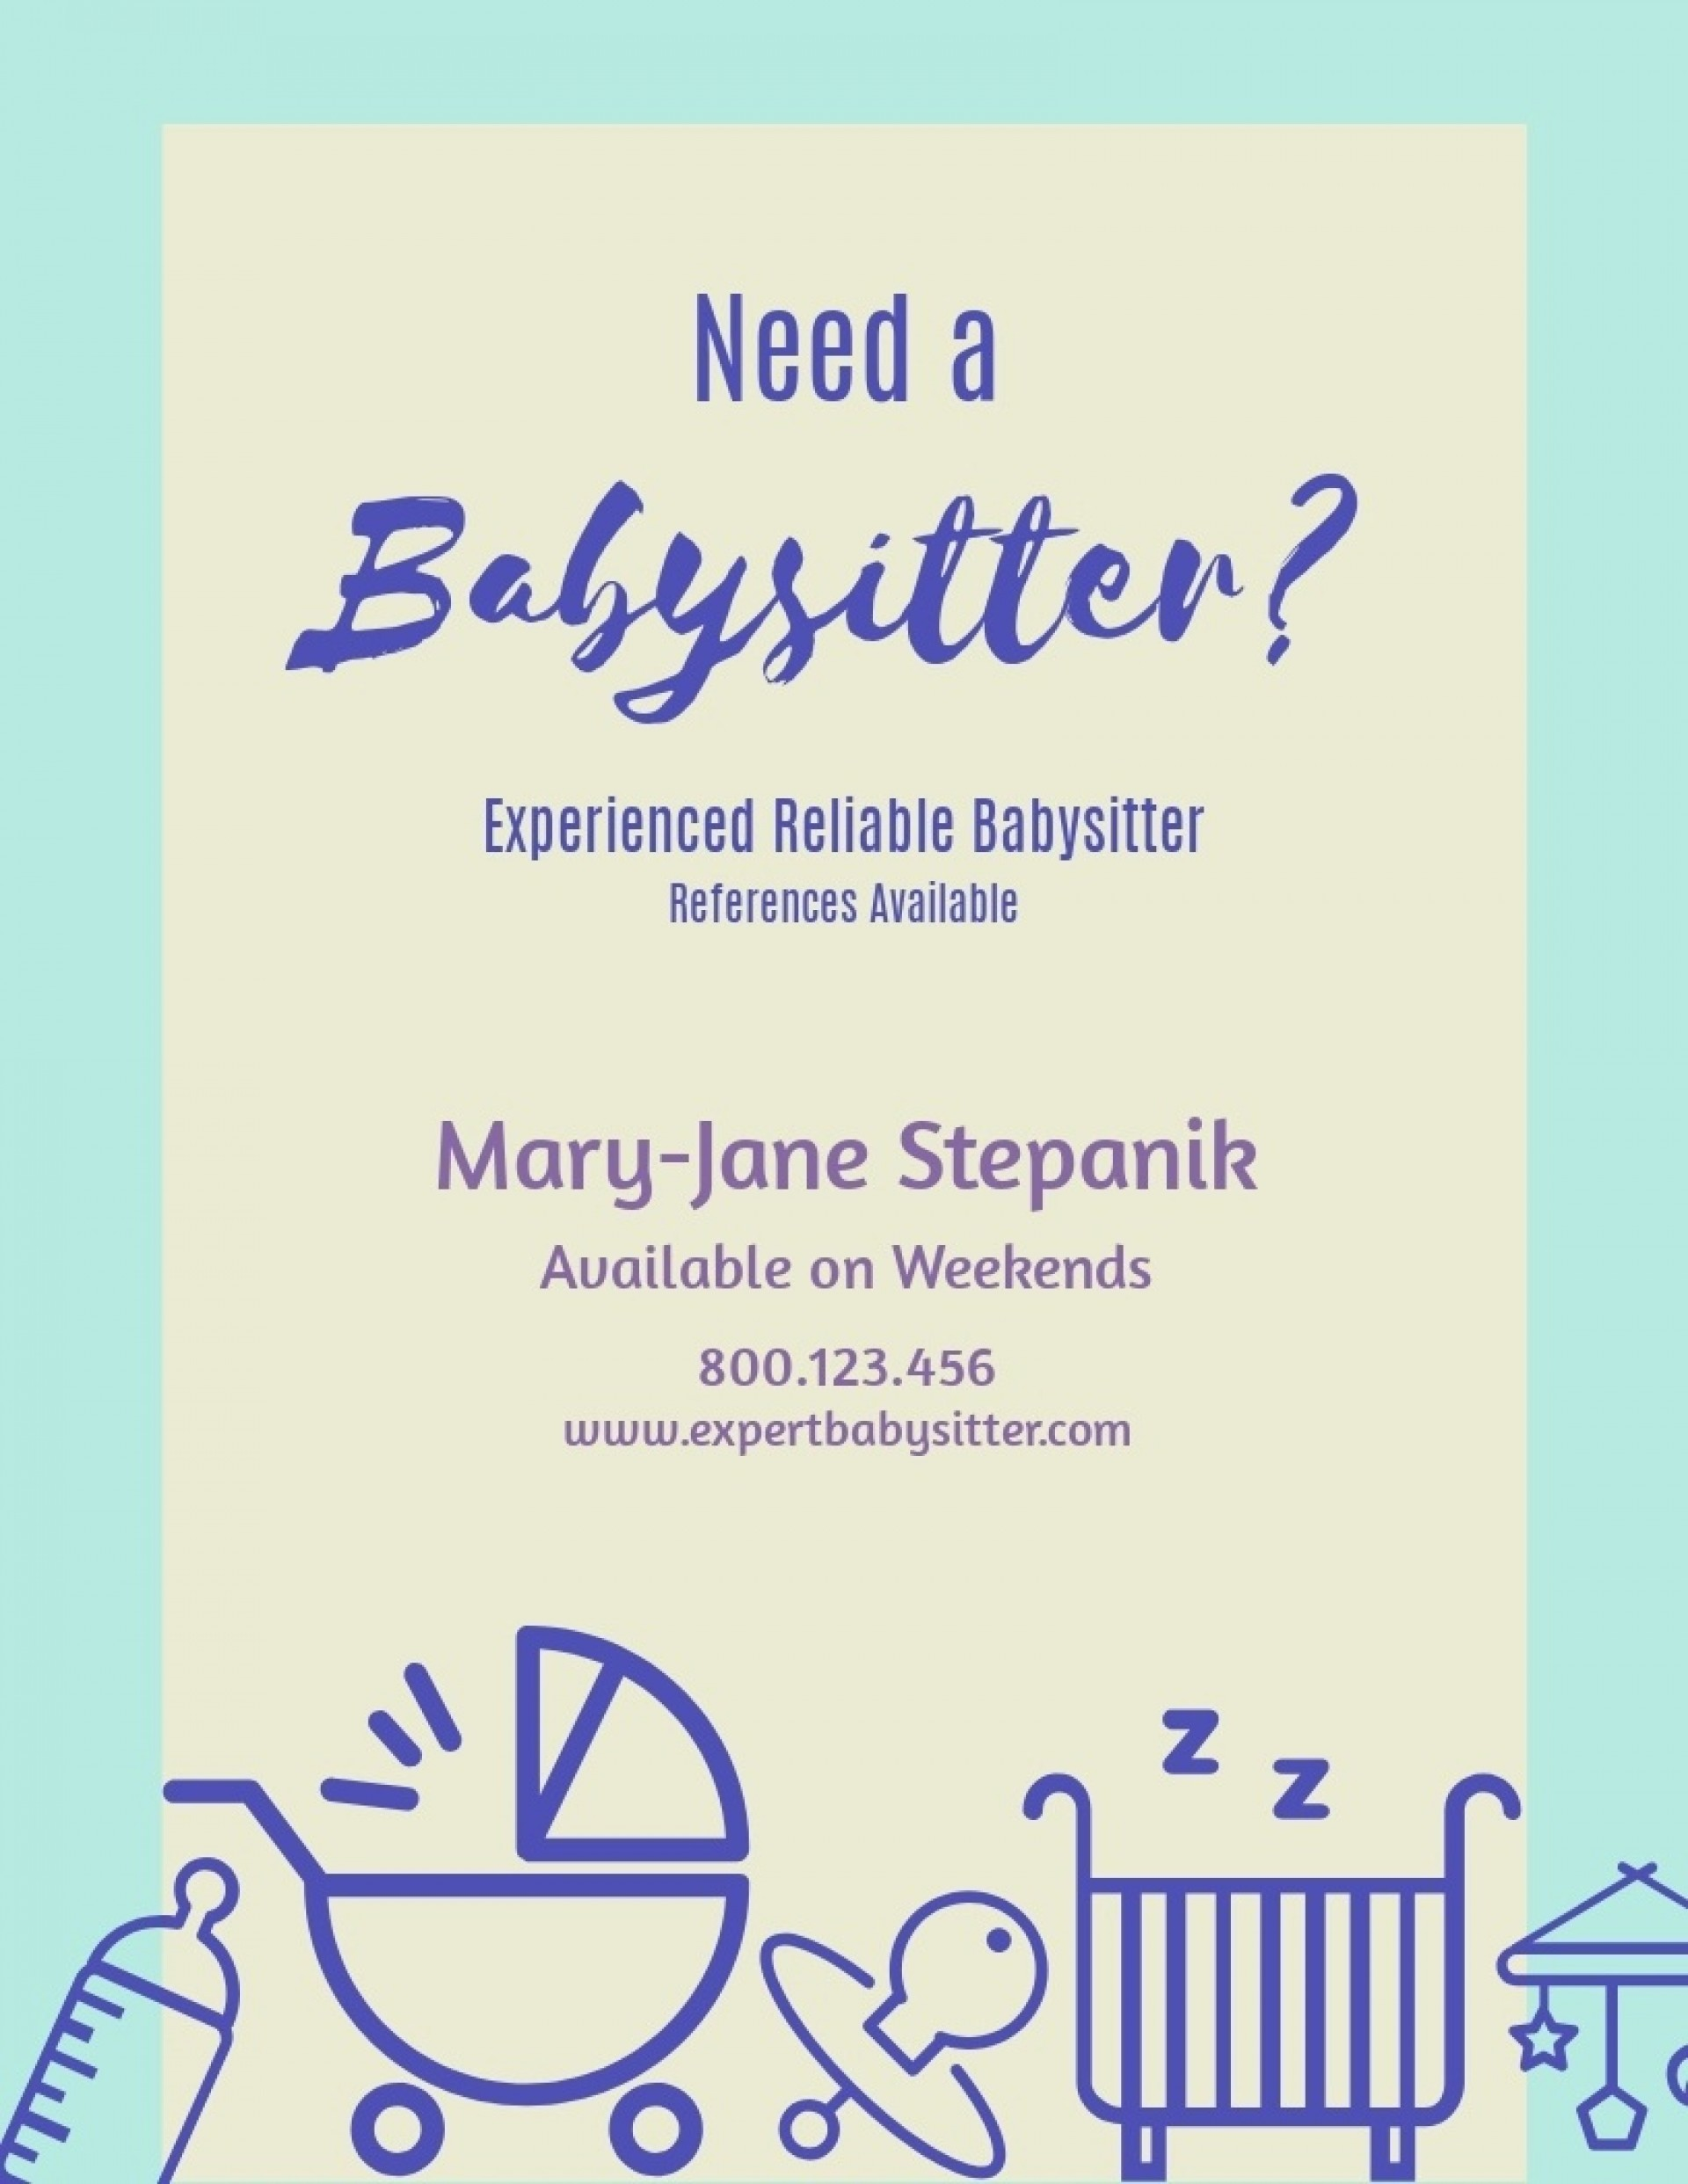 Need Free Babysitting Flyer Template  Printable Download Microsoft Word1920